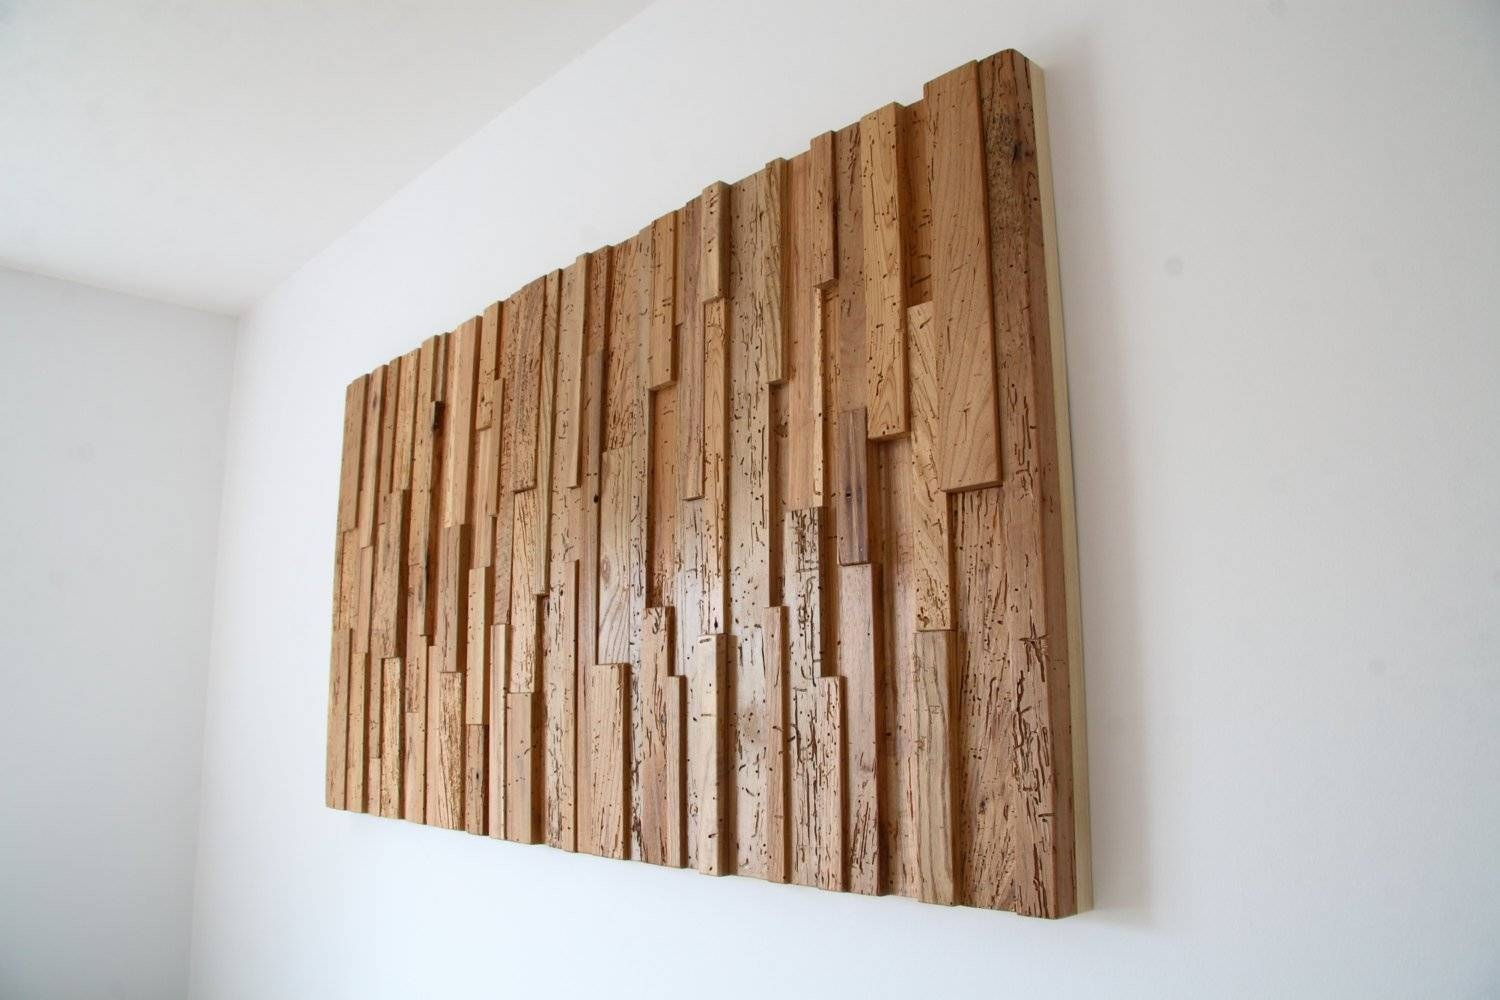 Outstanding Reclaimed Wood Wall Art – Style Motivation Throughout Newest Wood Wall Art (View 12 of 25)